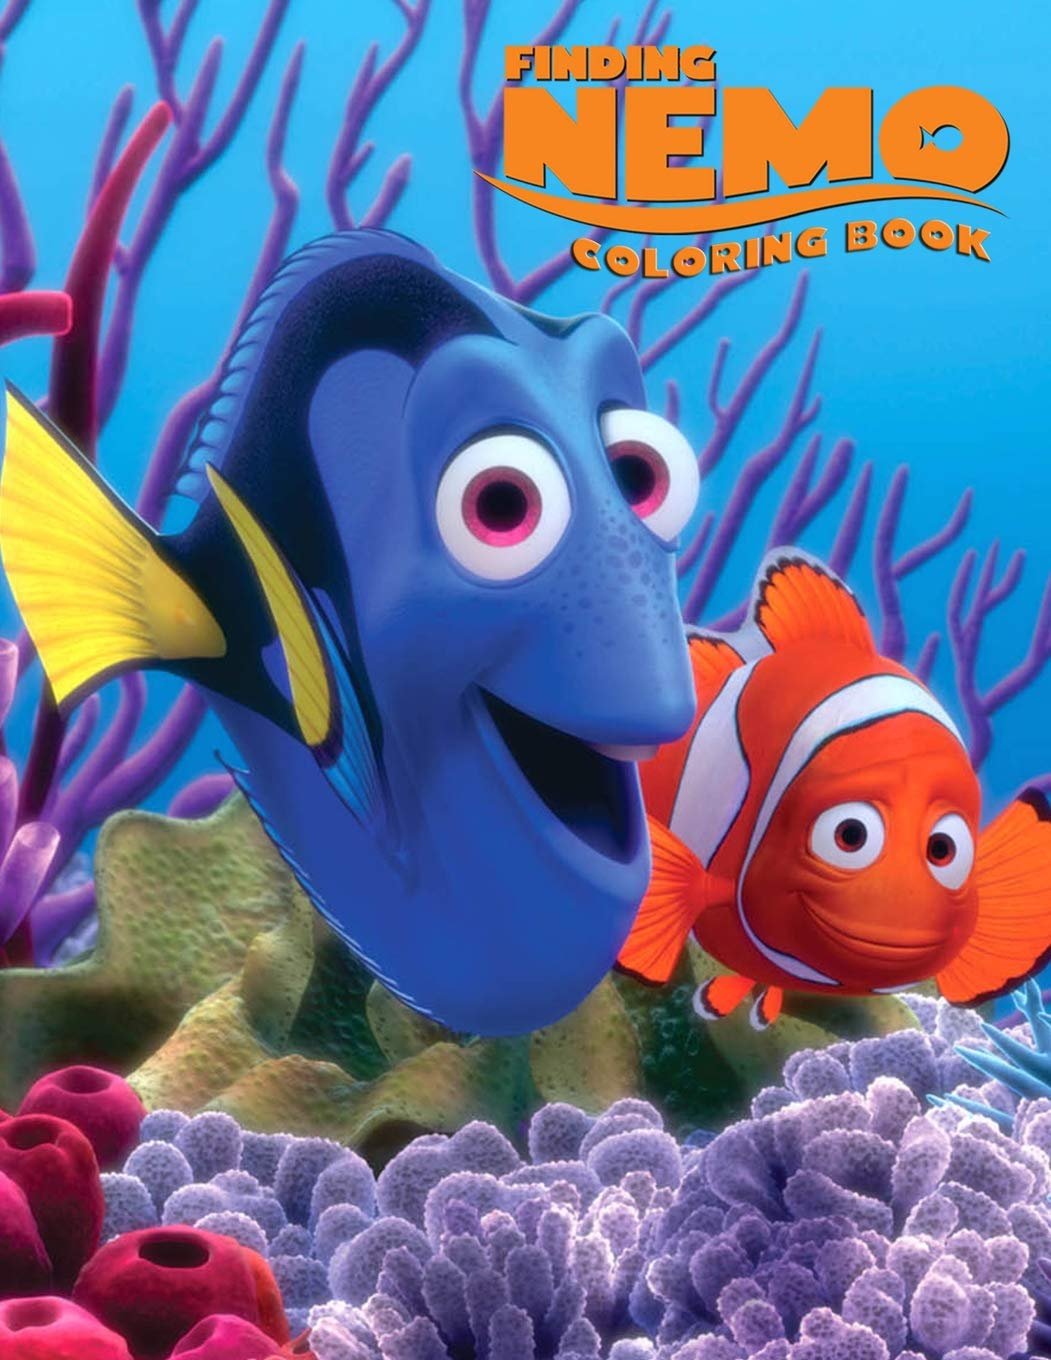 Finding Nemo Coloring Book: Finding Nemo Coloring Book ...